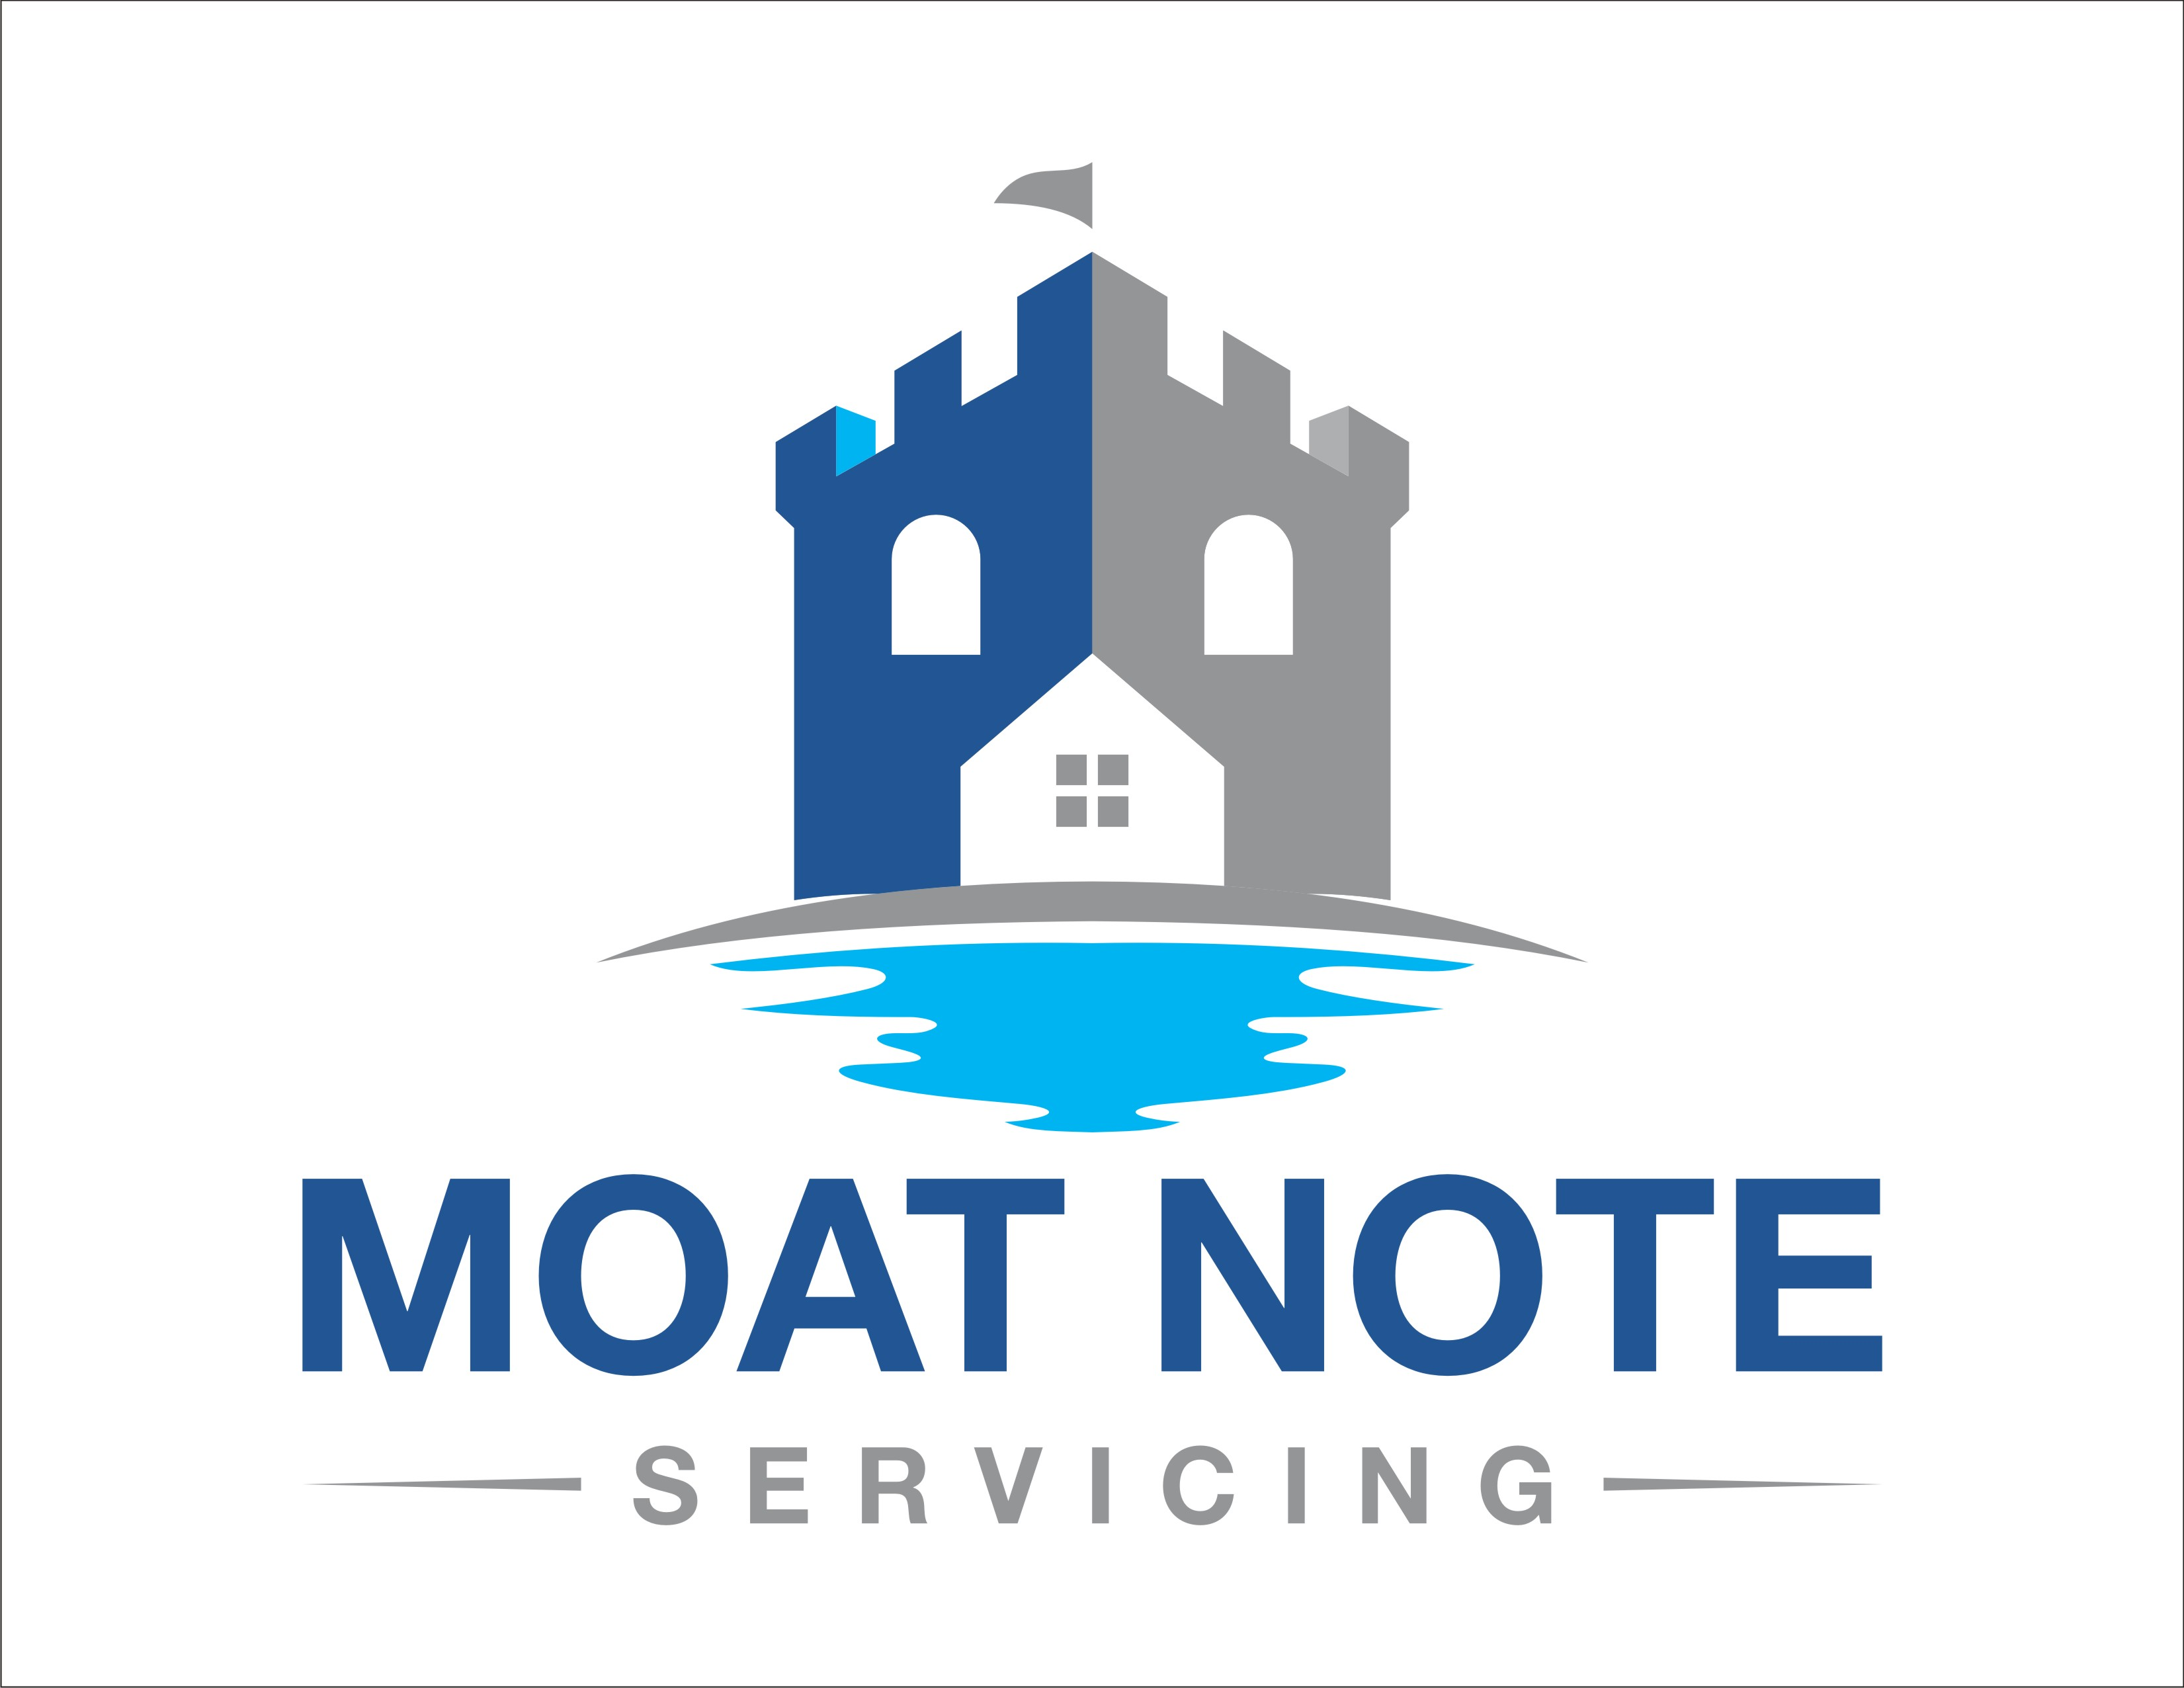 Moat Note Servicing